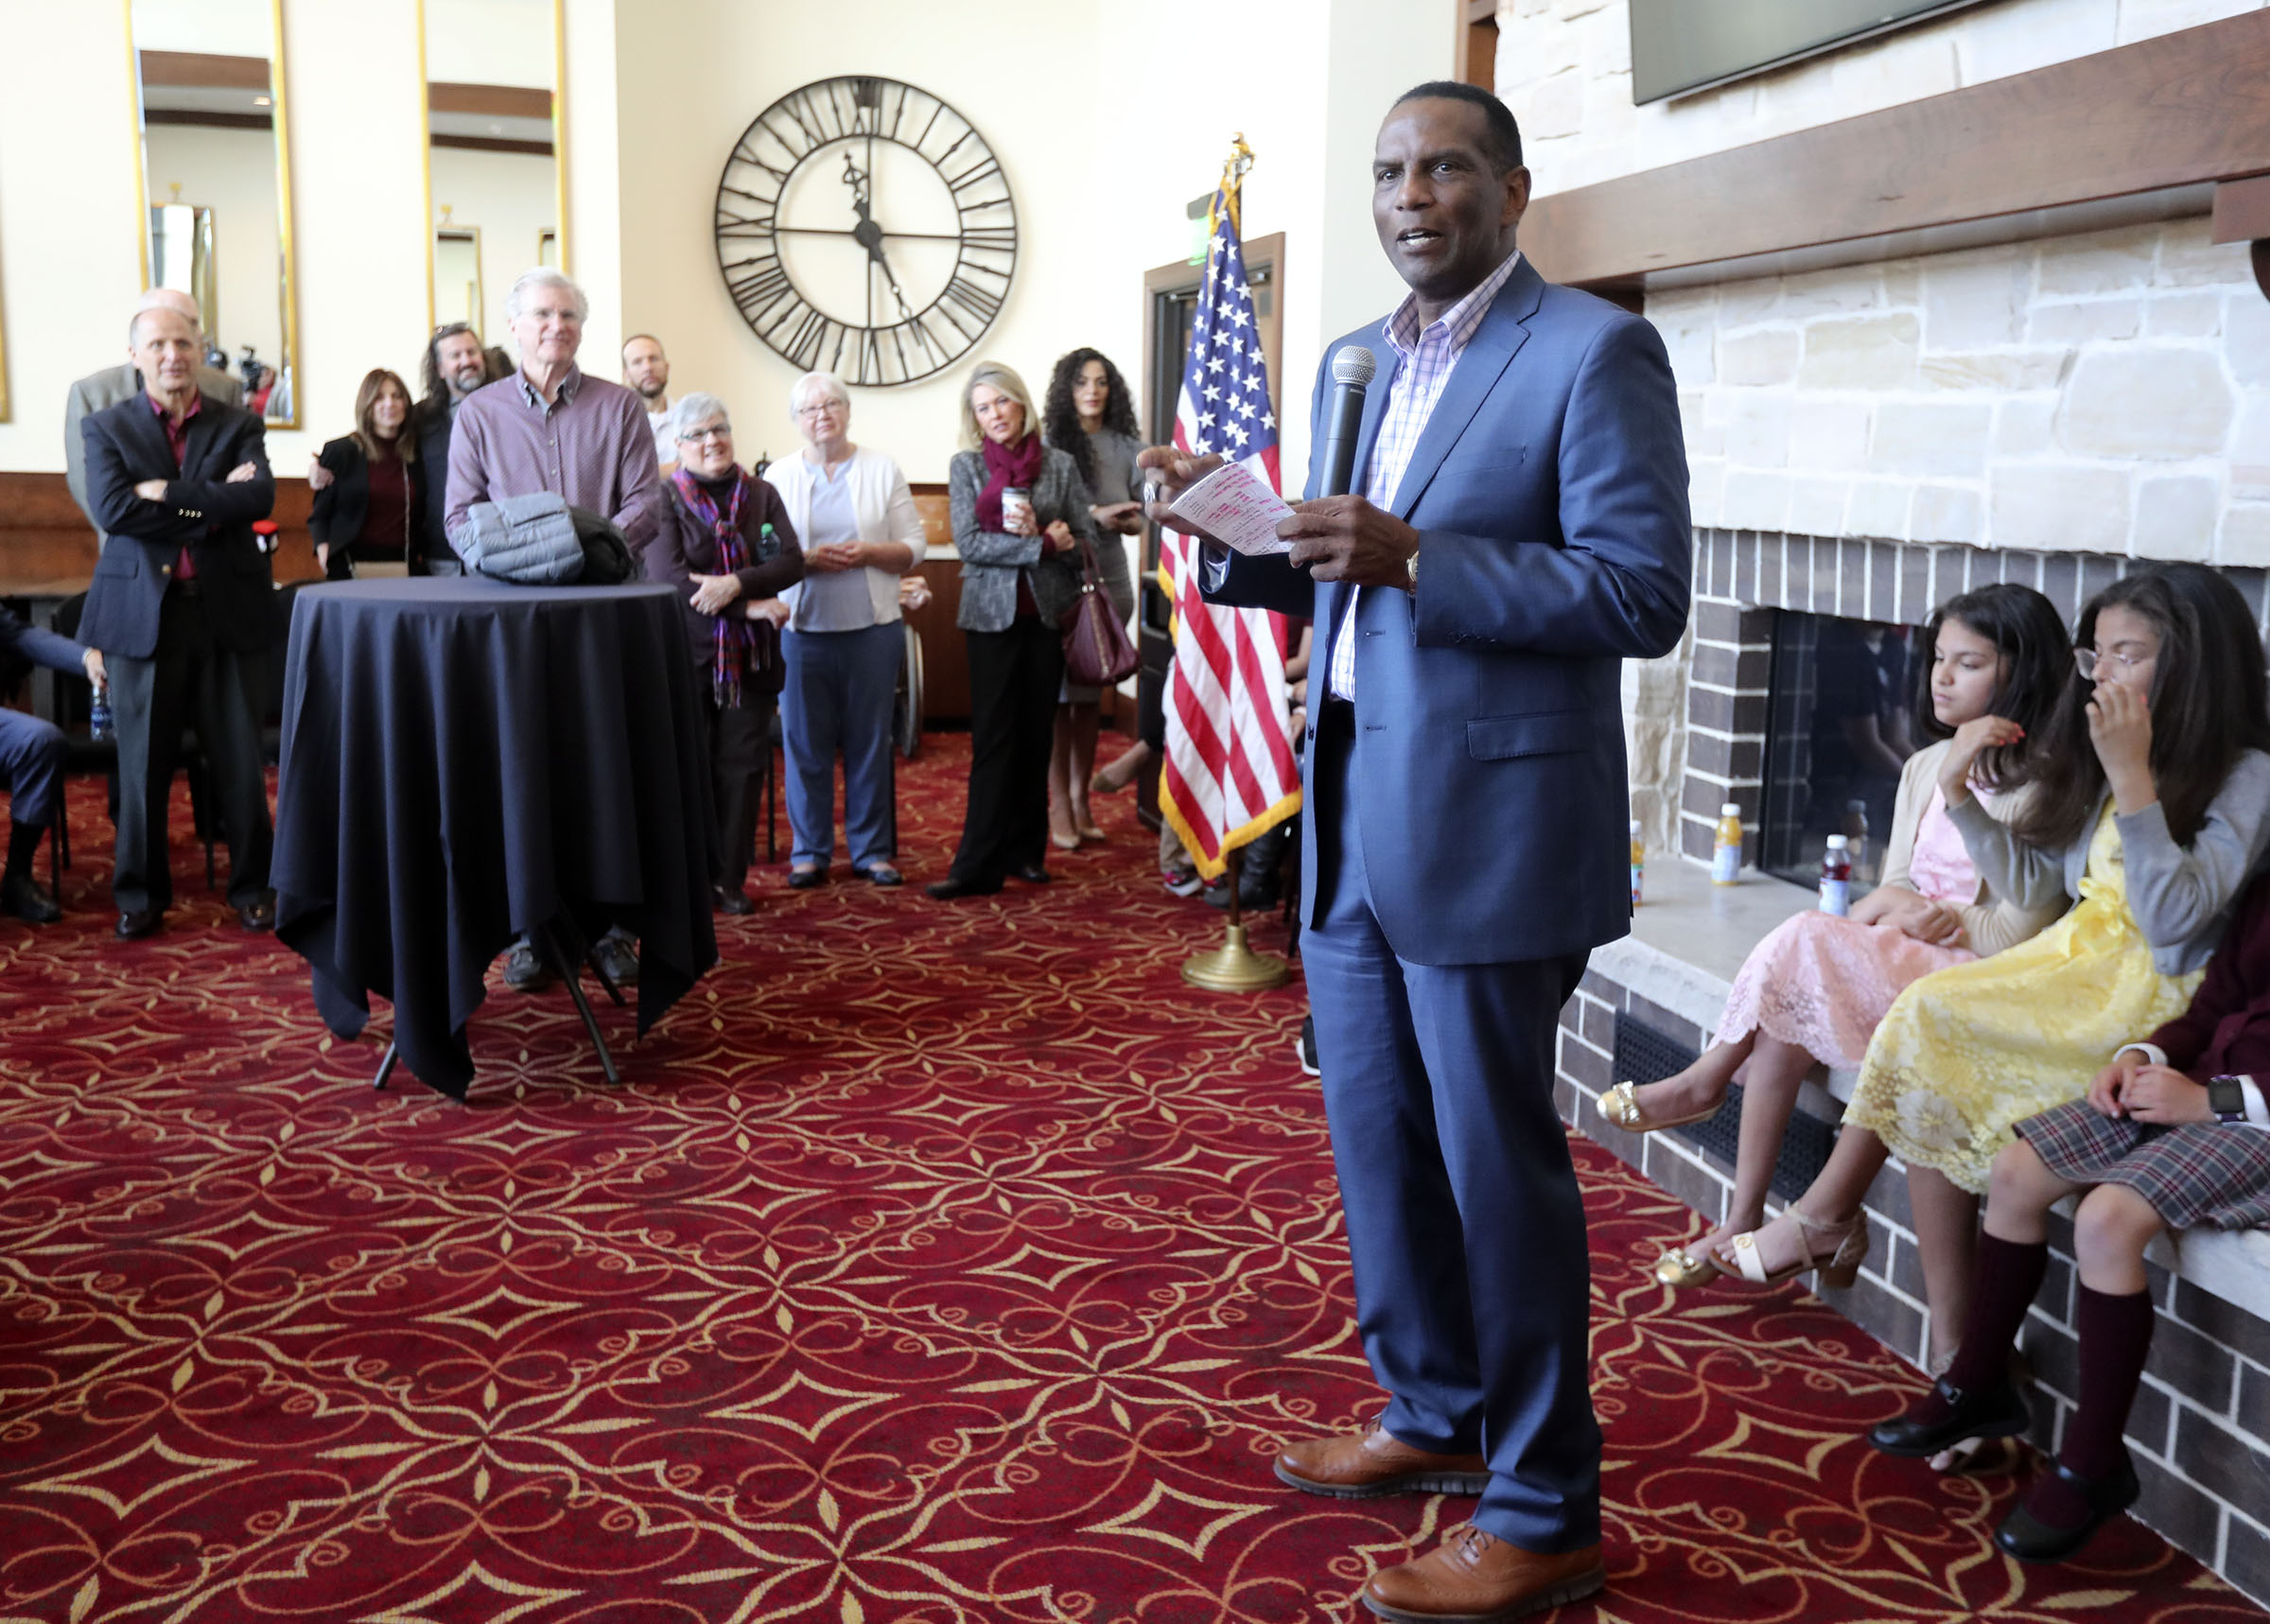 Republican Burgess Owens speaks during a campaign launch event at Hale Centre Theatre in Sandy on Wednesday, Nov. 6, 2019. Burgess announced Wednesday he will run against Rep. Ben McAdams, D-Utah, in the 4th Congressional District.